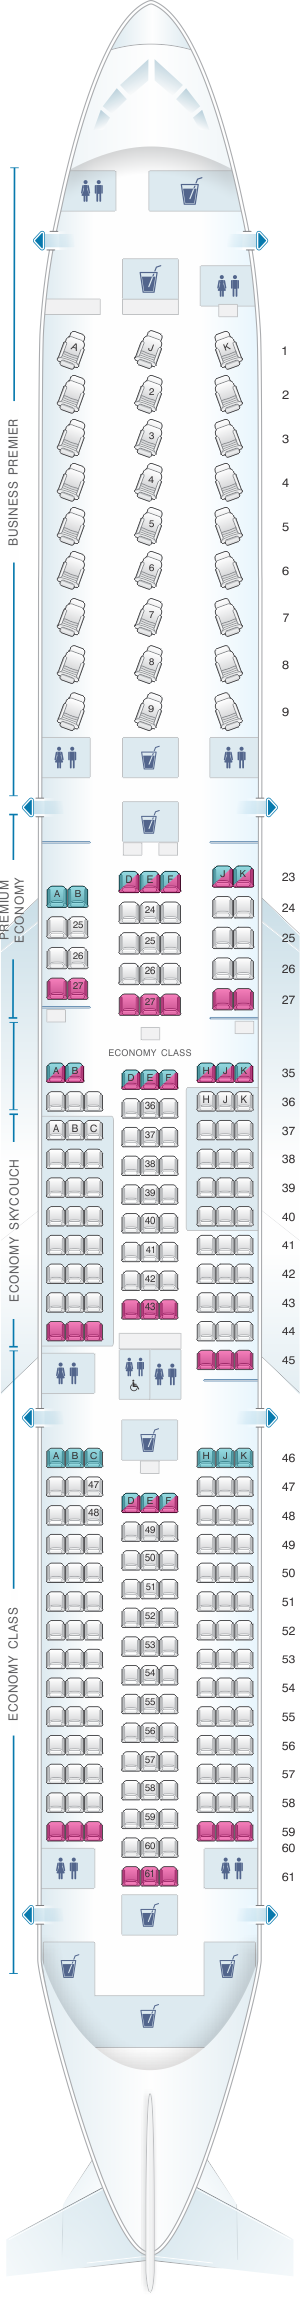 Seat map for Air New Zealand Boeing B787 9 Config.2